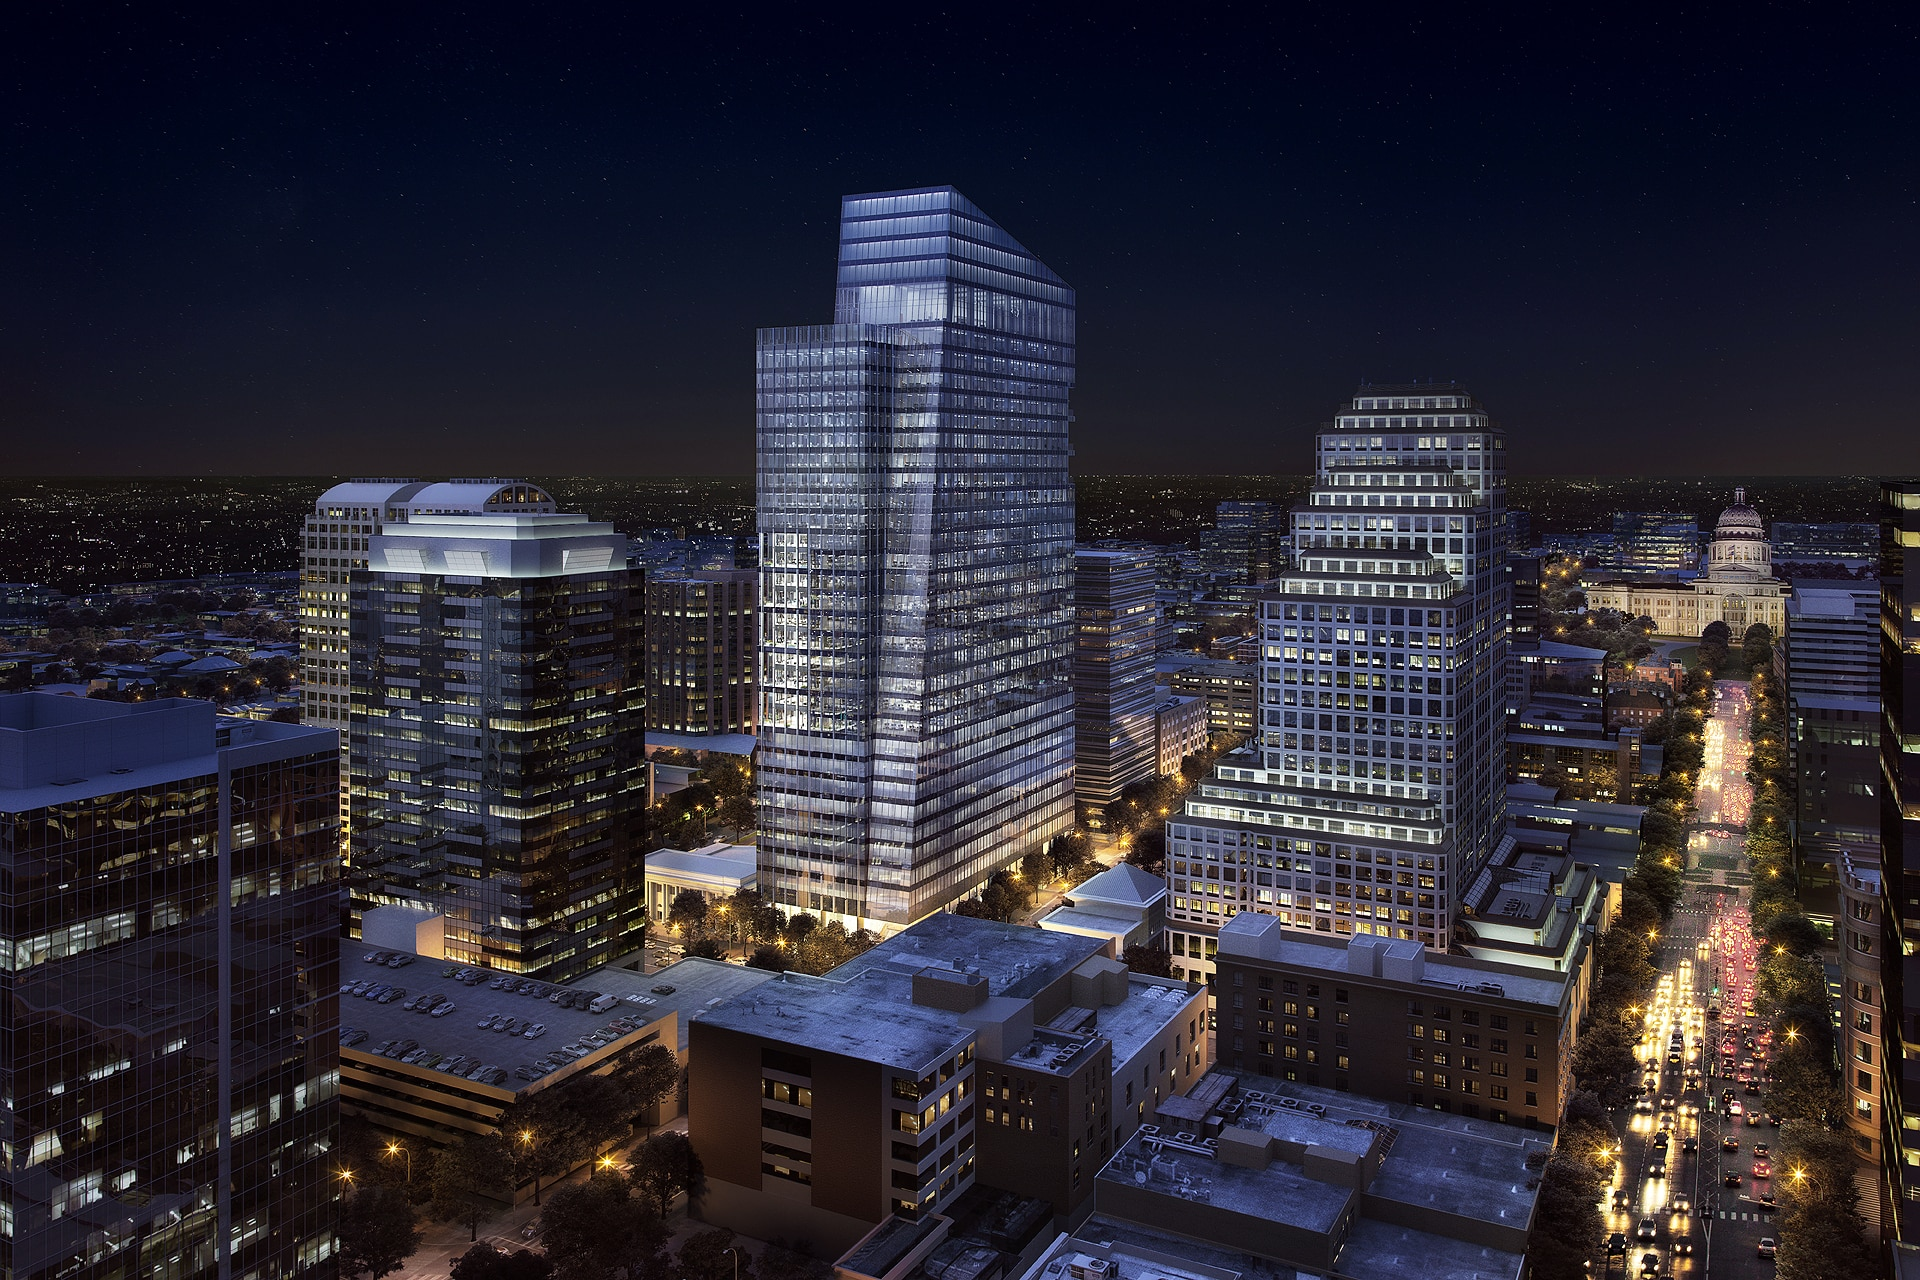 200 West 6th Street Night Rendering by Devisual